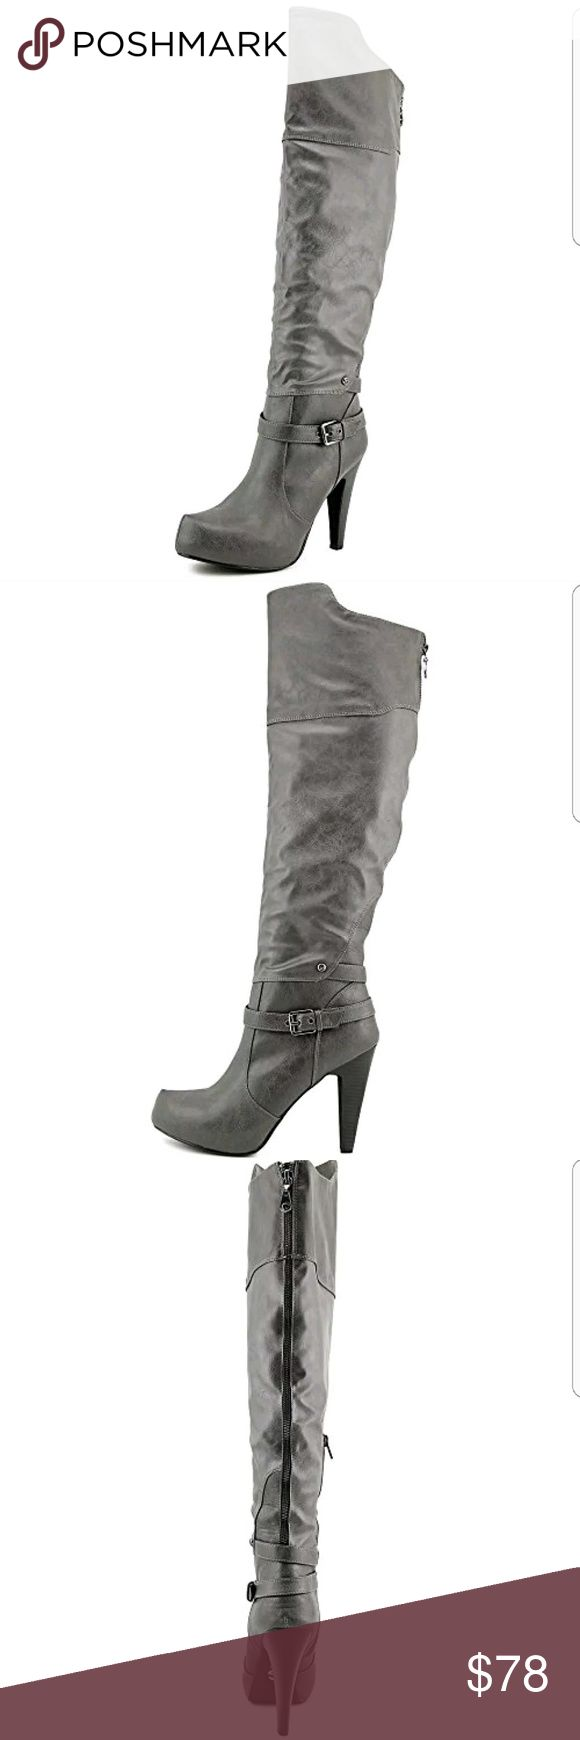 New G by Guess Trinna Fashion Boot Gray Zip 6 New Without Box Has tags on bottom  G by Guess Trinna Fashion Boot Over the Knee Buckle Designs Back has non-functional zippers There are zippers inside the boot that is made for easier on and off Dark Gray Synthetic Uppers Soles are Black Size 6 Great with dresses, skirts, skinny jeans, leggings  View all photos and ask any and all questions I have had these a few years.. So comfortable, but never wore. Only tried on Ask Questions Make Offers G…